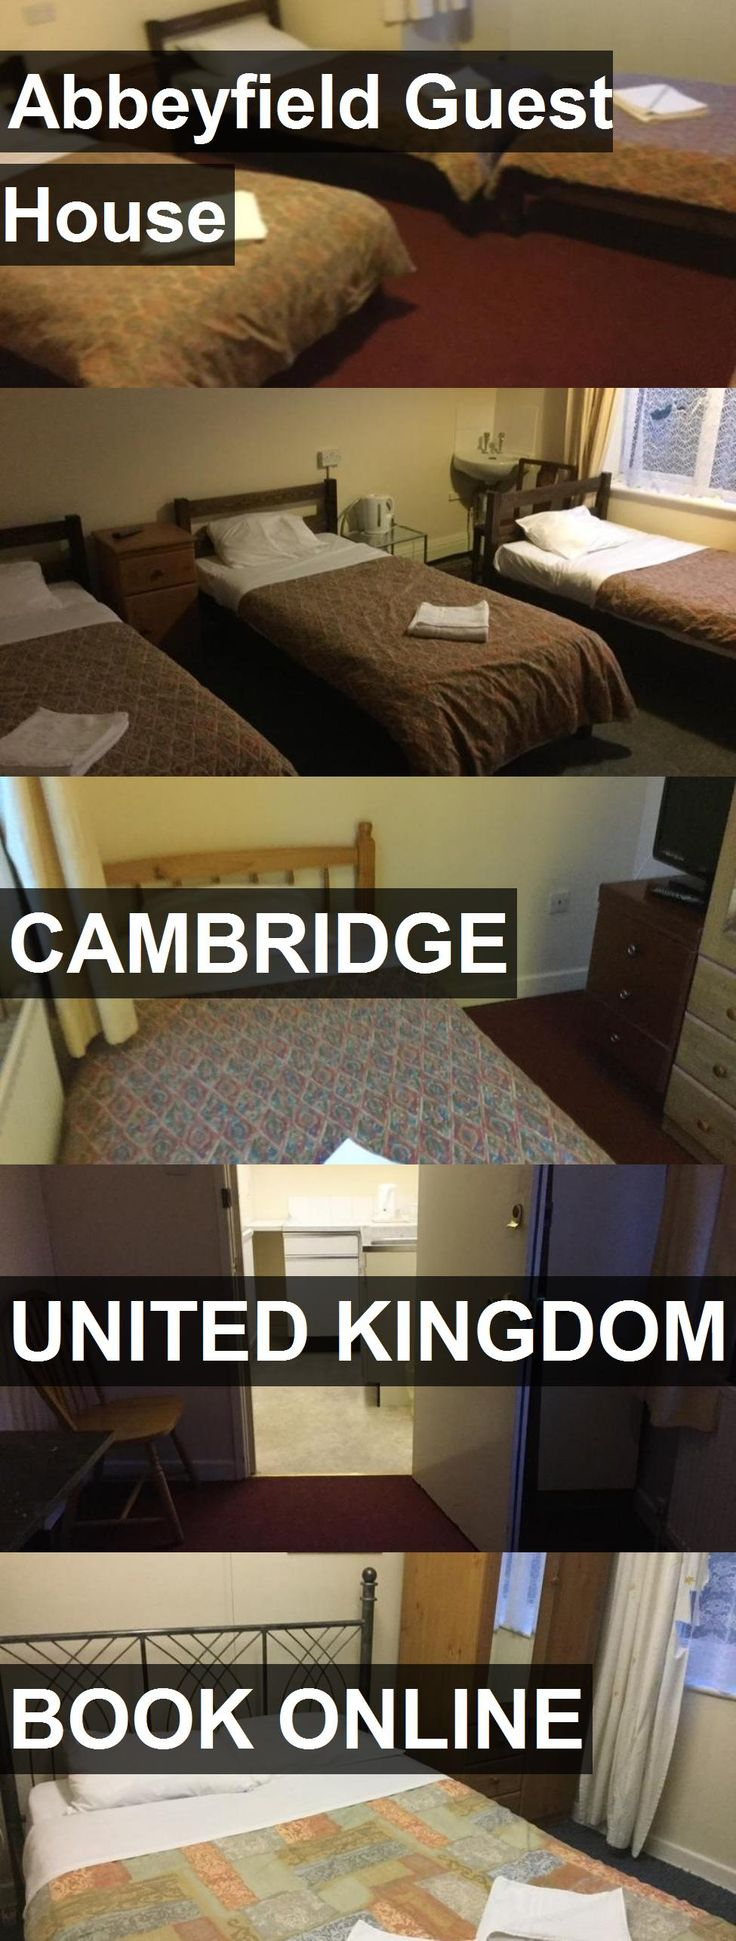 Abbeyfield Guest House in Cambridge, United Kingdom. For more information, photos, reviews and best prices please follow the link. #UnitedKingdom #Cambridge #travel #vacation #guesthouse